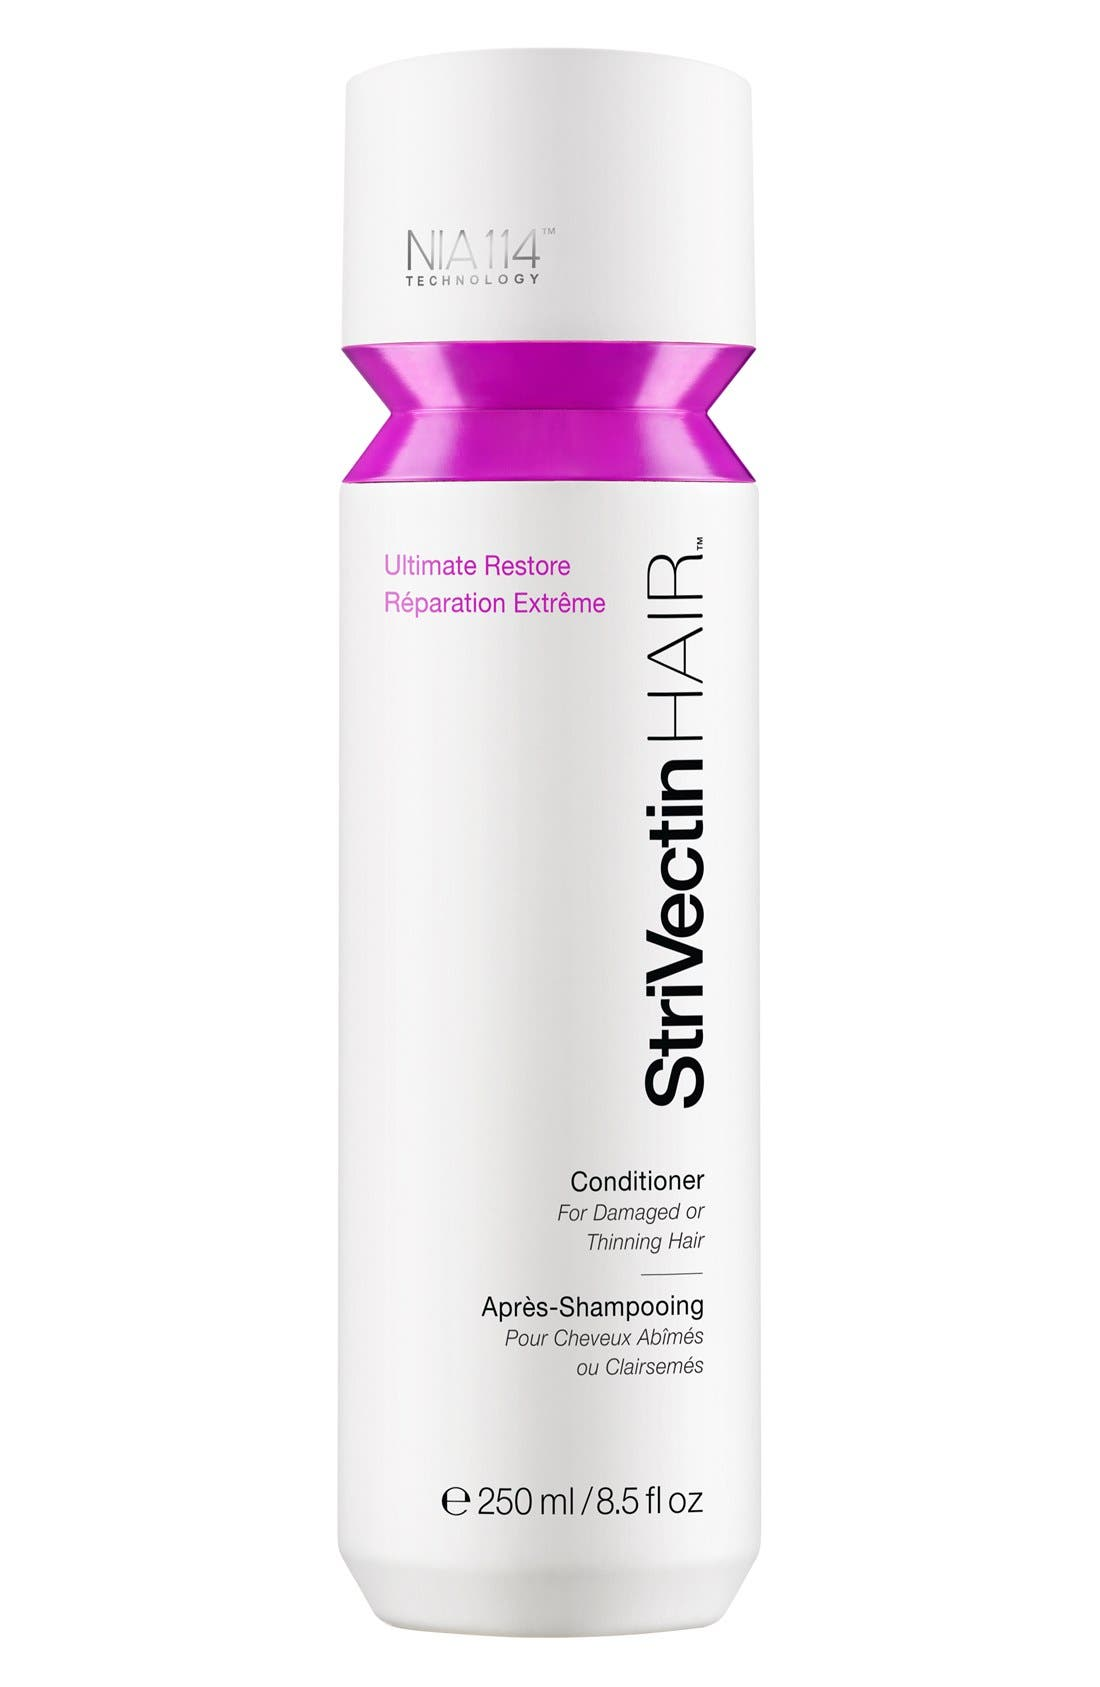 StriVectinHAIR<sup>™</sup> 'Ultimate Restore' Conditioner for Damaged or Thinning Hair,                             Main thumbnail 1, color,                             000